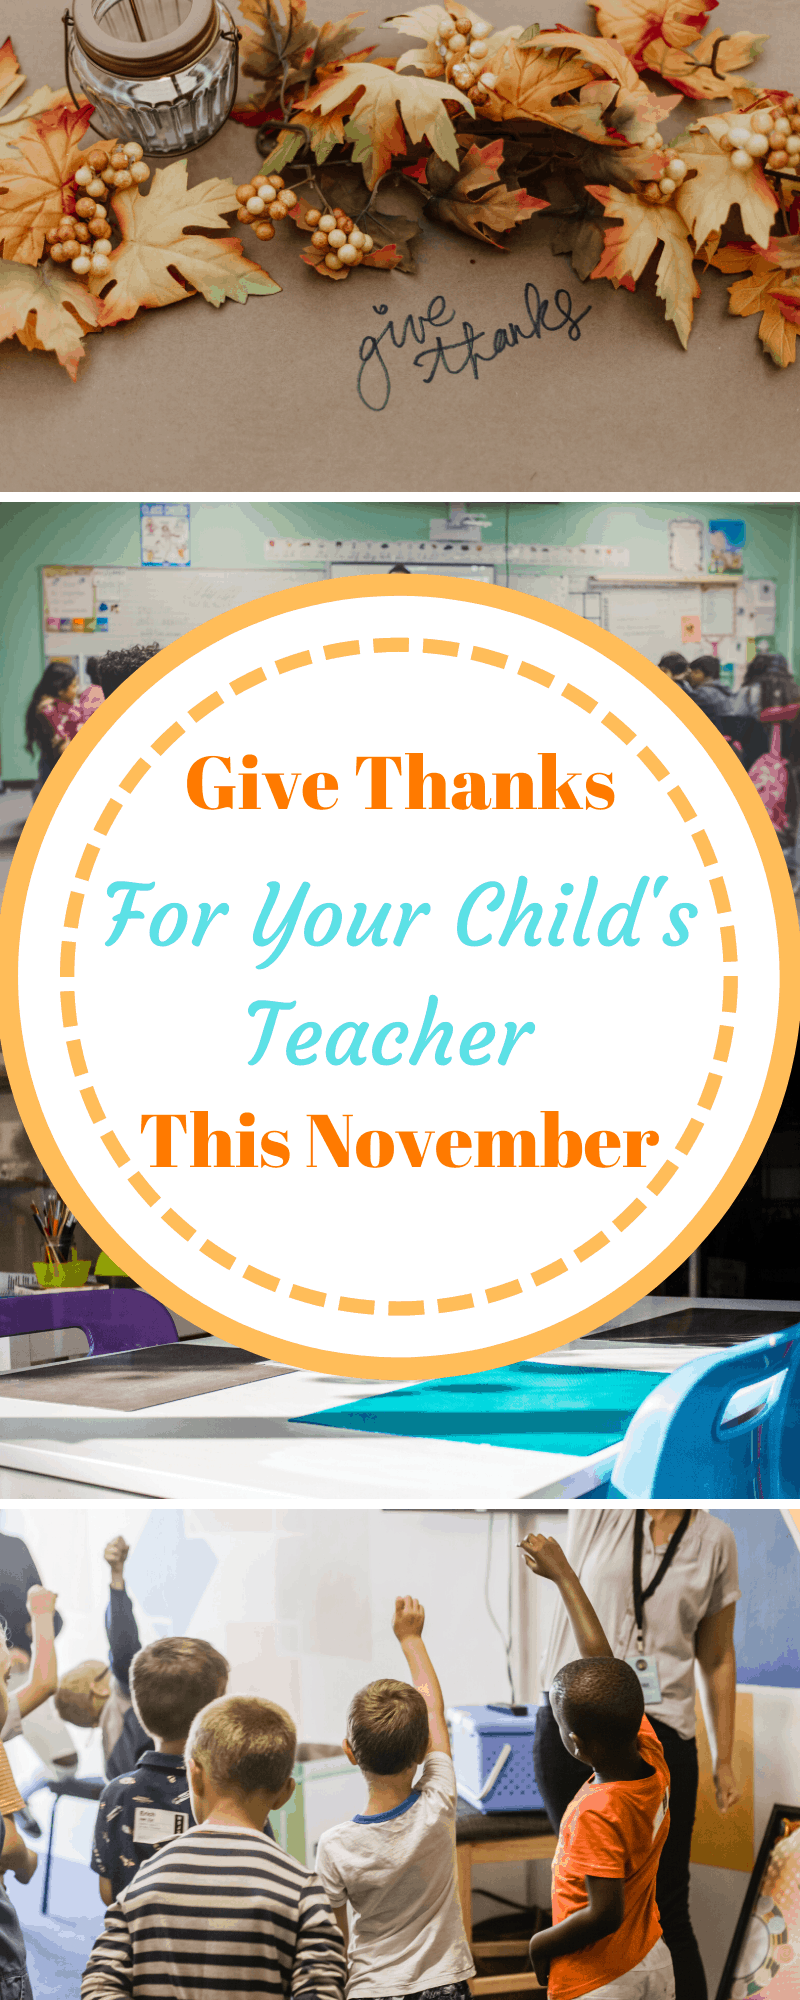 give thanks for your child's teacher